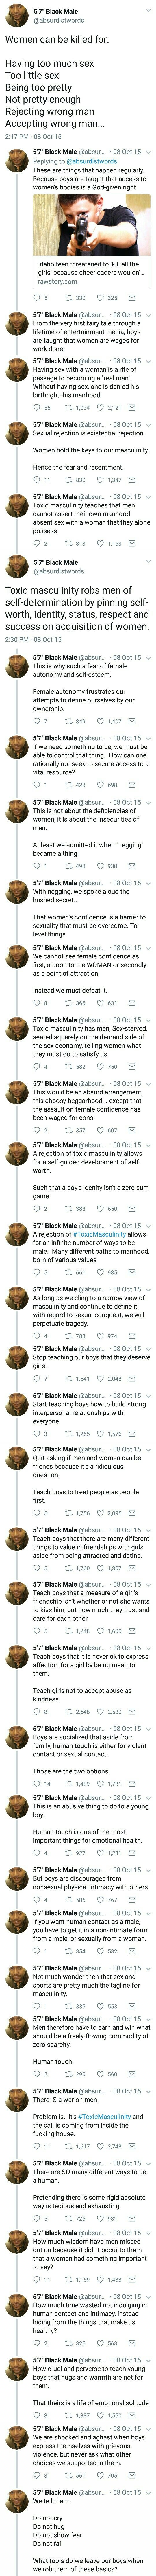 Toxic masculinity / @Chelsochist PRAISE HIM. Also, teach boys that if they want to date someone It can be anyone, not just girls.